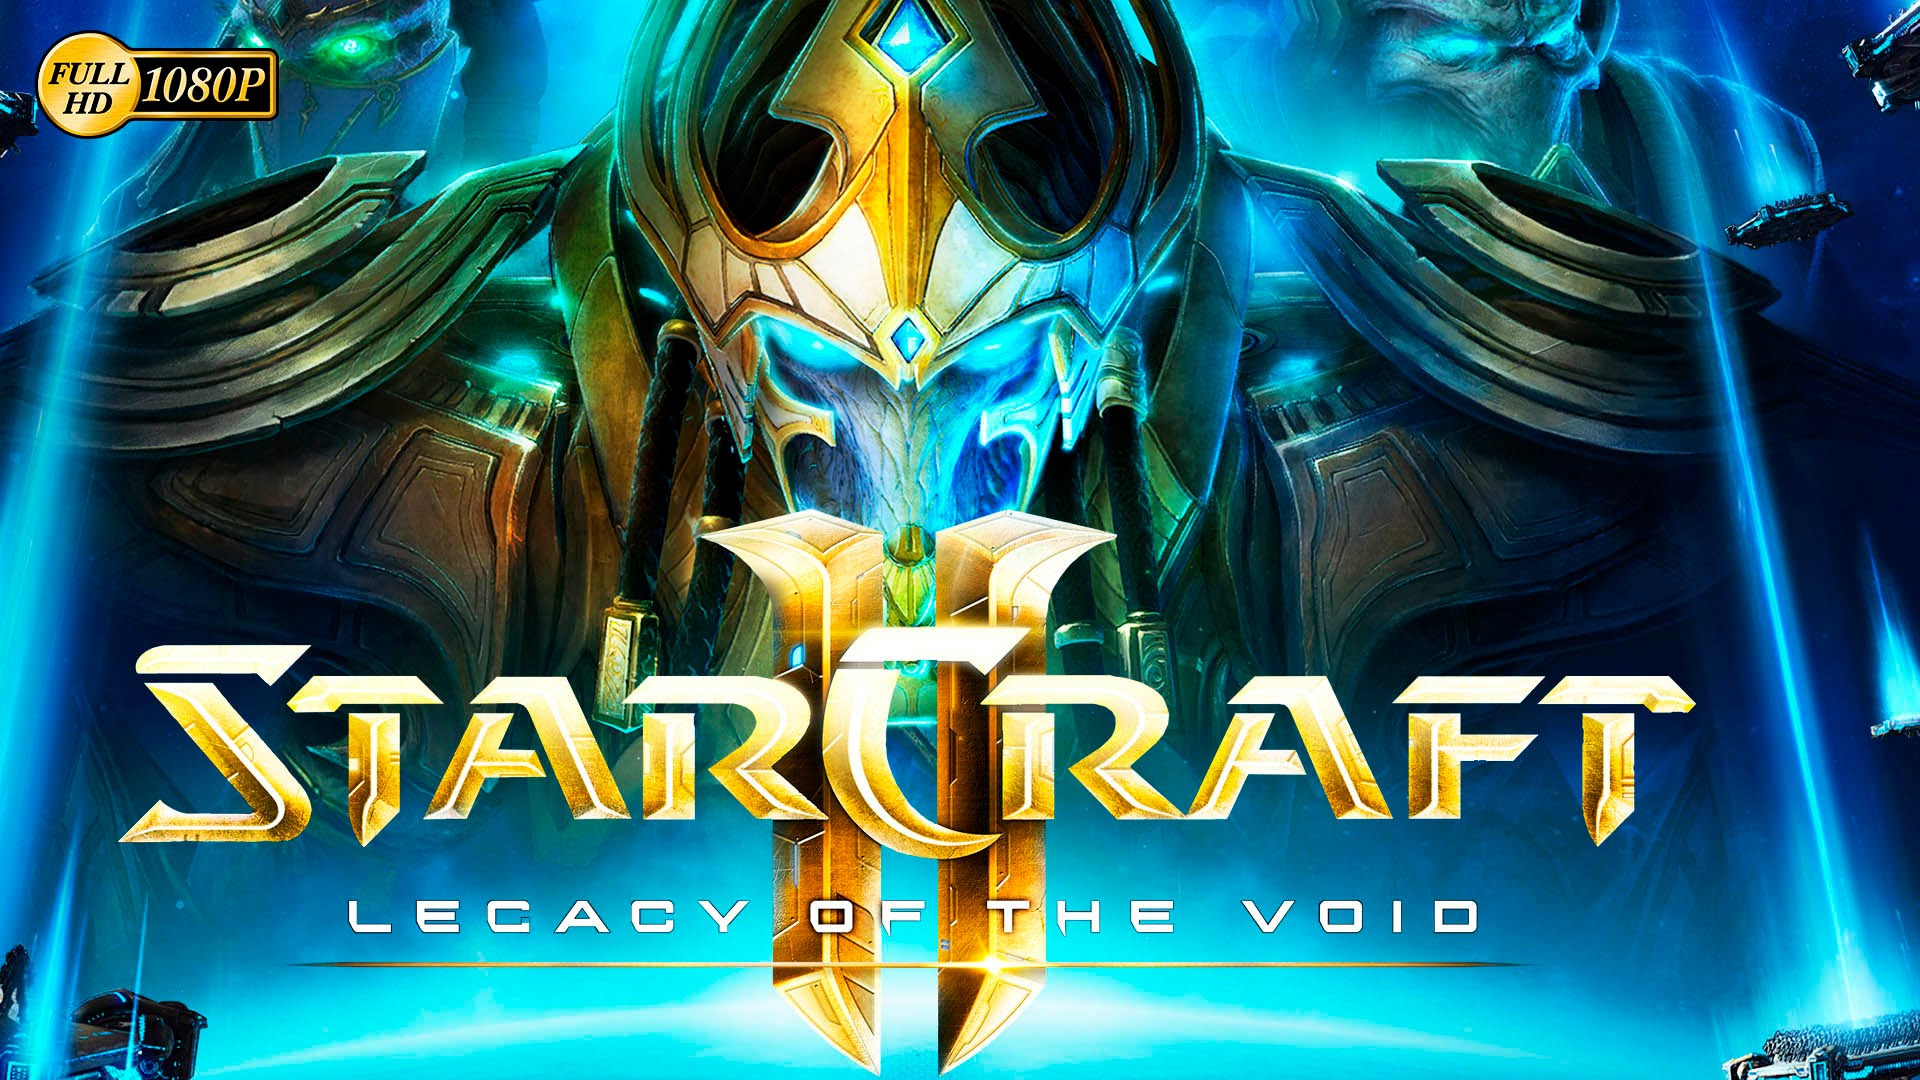 Starcraft 2 Legacy Of The Void Hd Wallpapers 7wallpapers Net